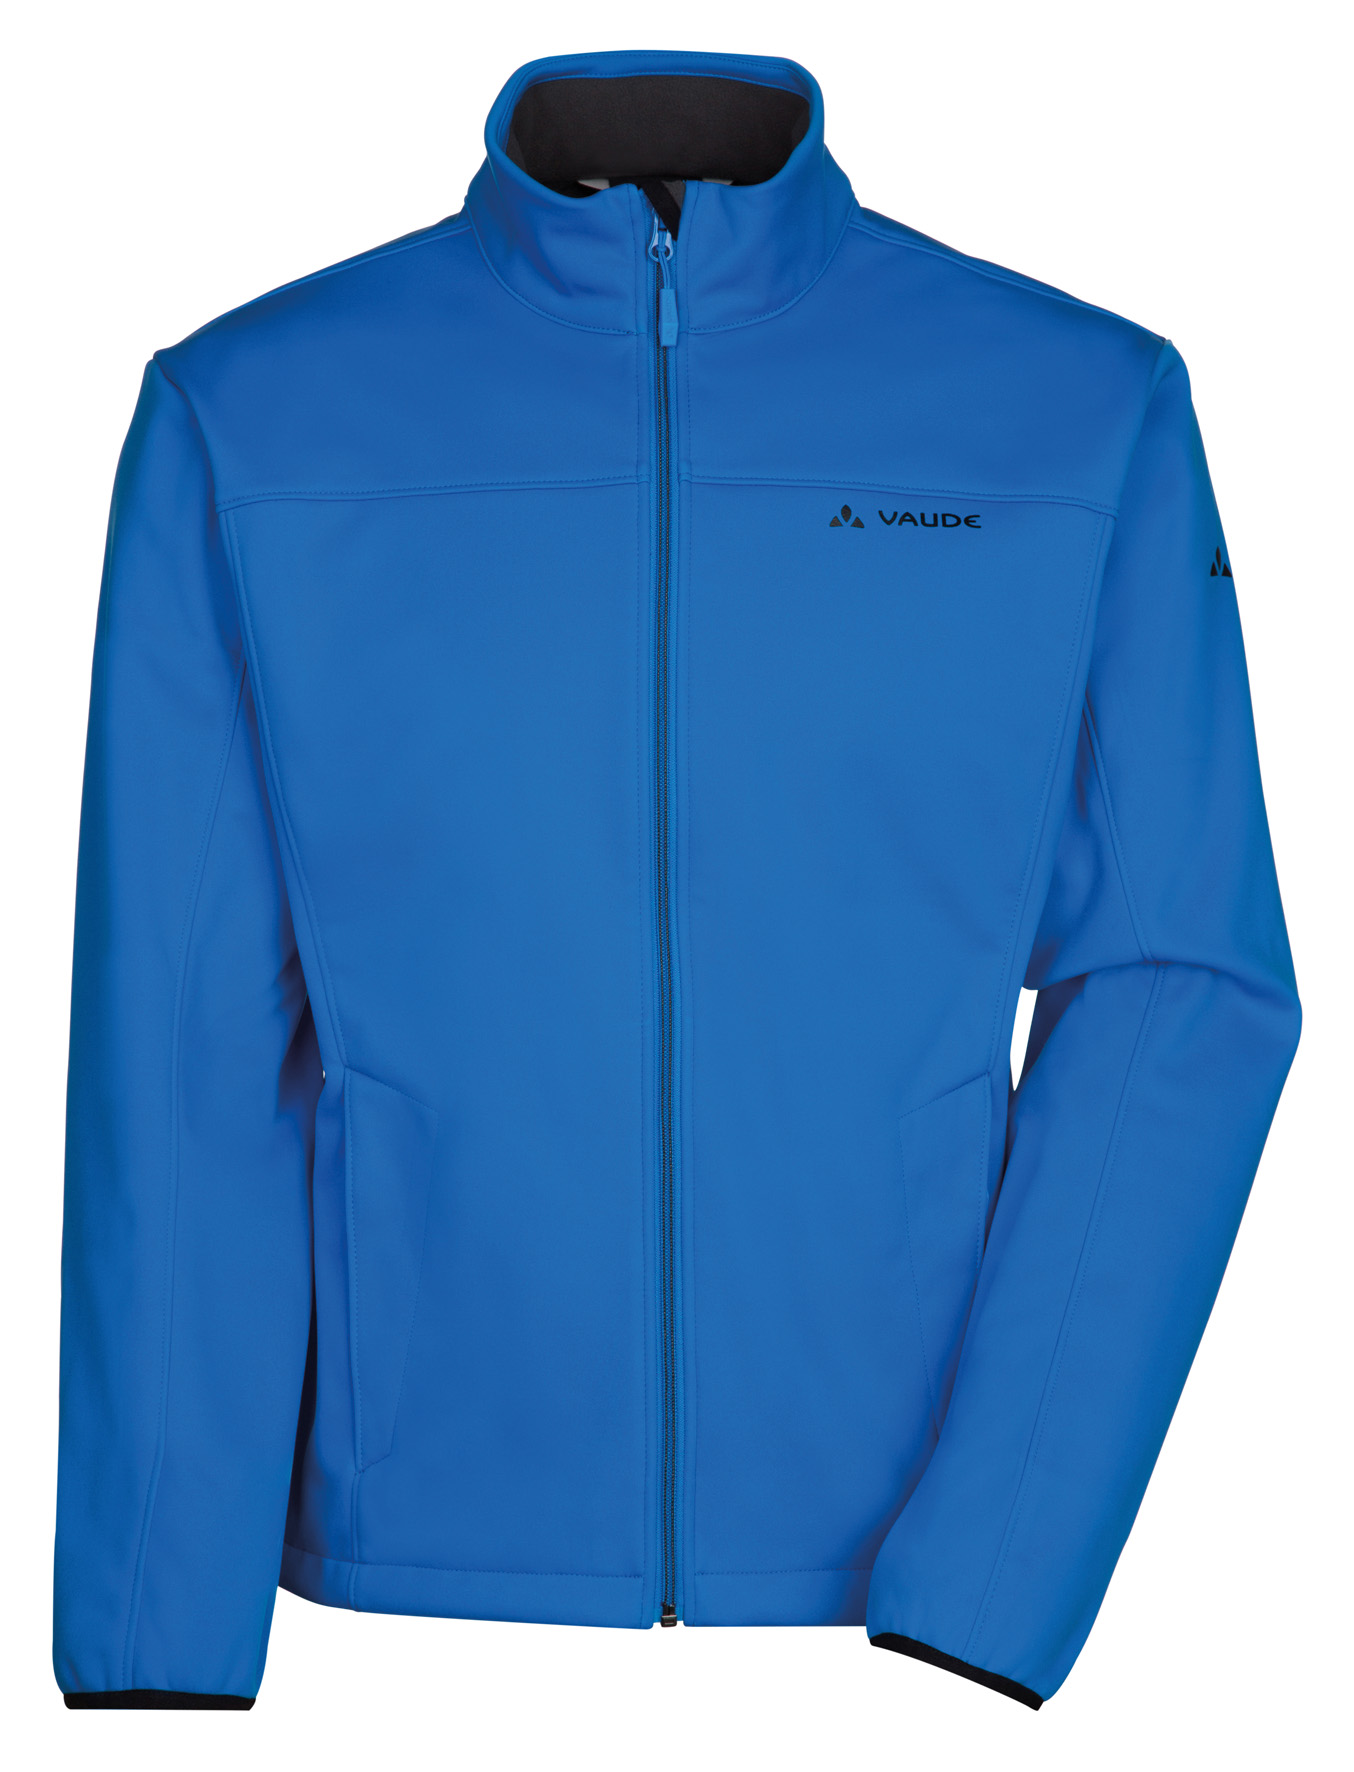 Men´s Wintry Jacket II hydro blue Größe L - schneider-sports